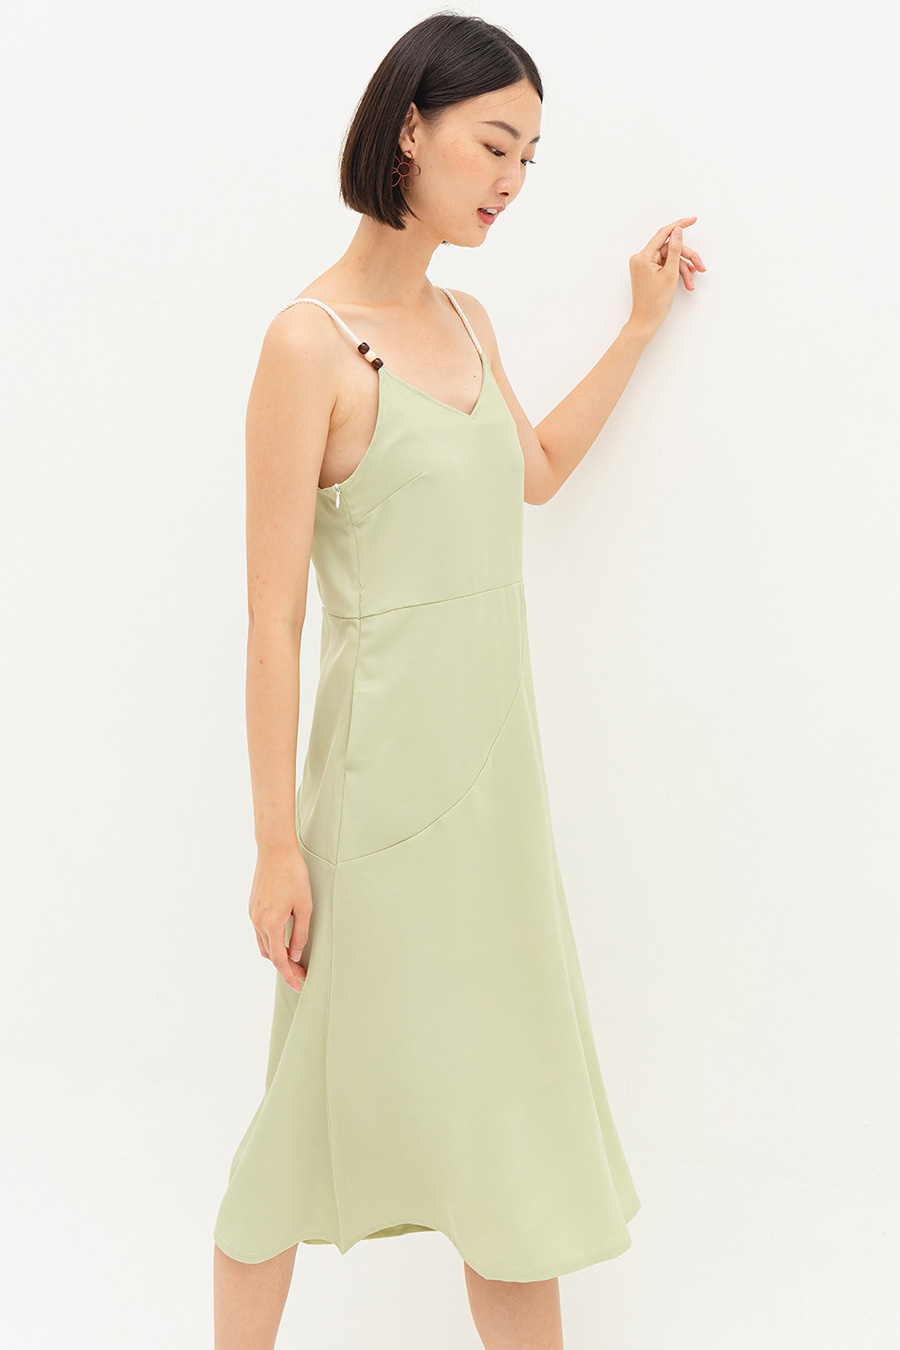 *SALE* REBEKAH DRESS - SAGE [BY MODPARADE]